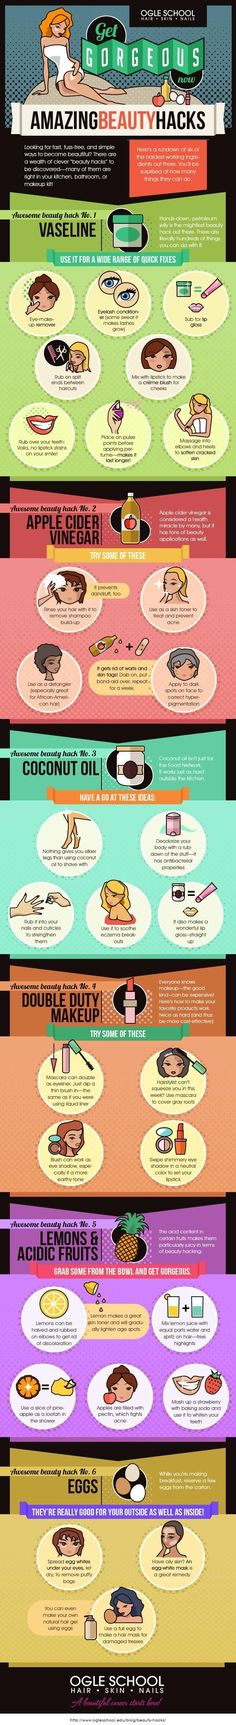 Check out >>> Get Gorgeous: 6 Beauty Hacks To Make You Look Like A Million Dollars